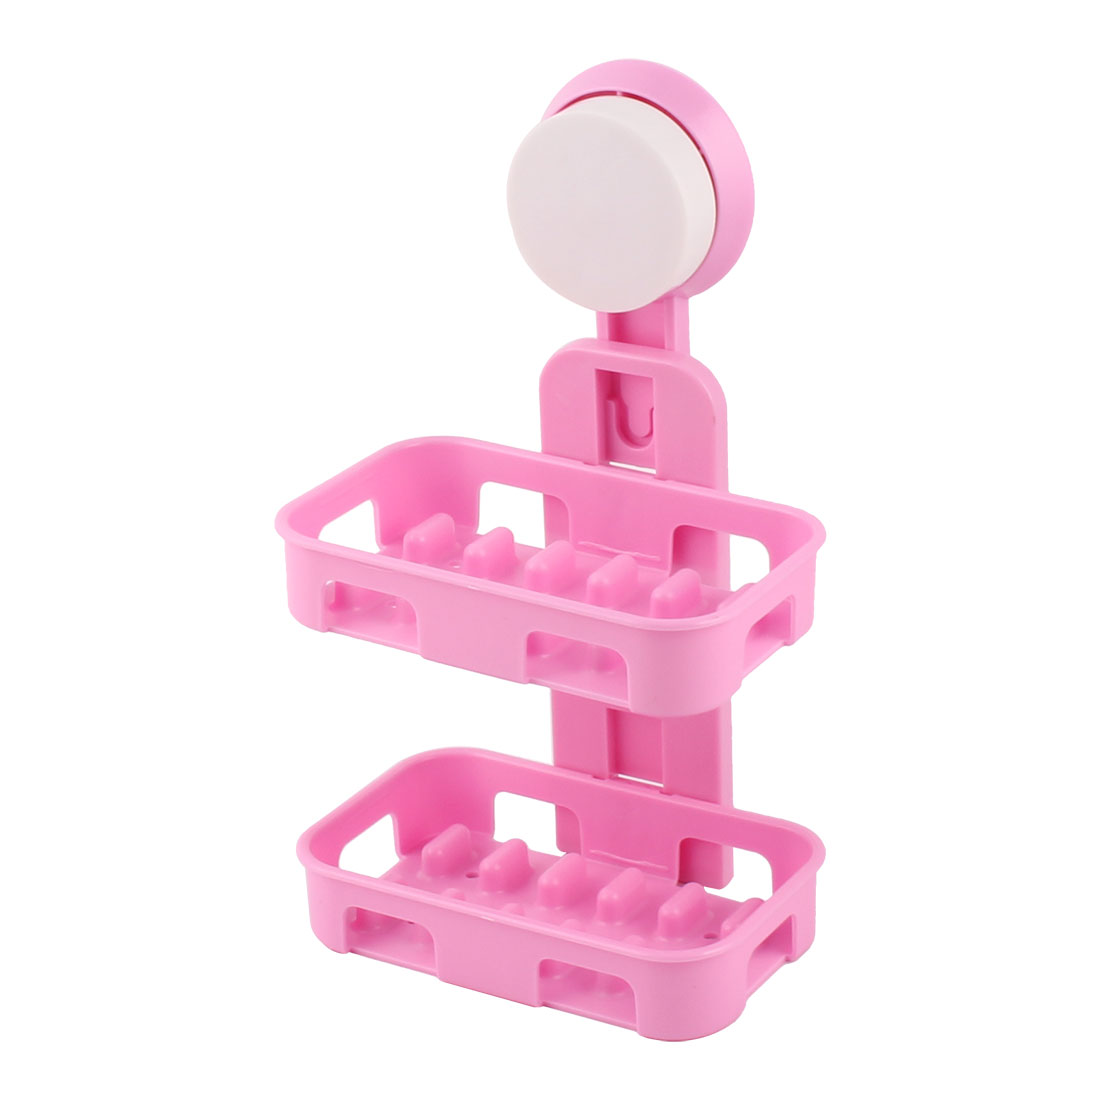 Bathroom Plastic Rectangle Double Layers Suction Shower Soap Holder Box Dish Container Pink